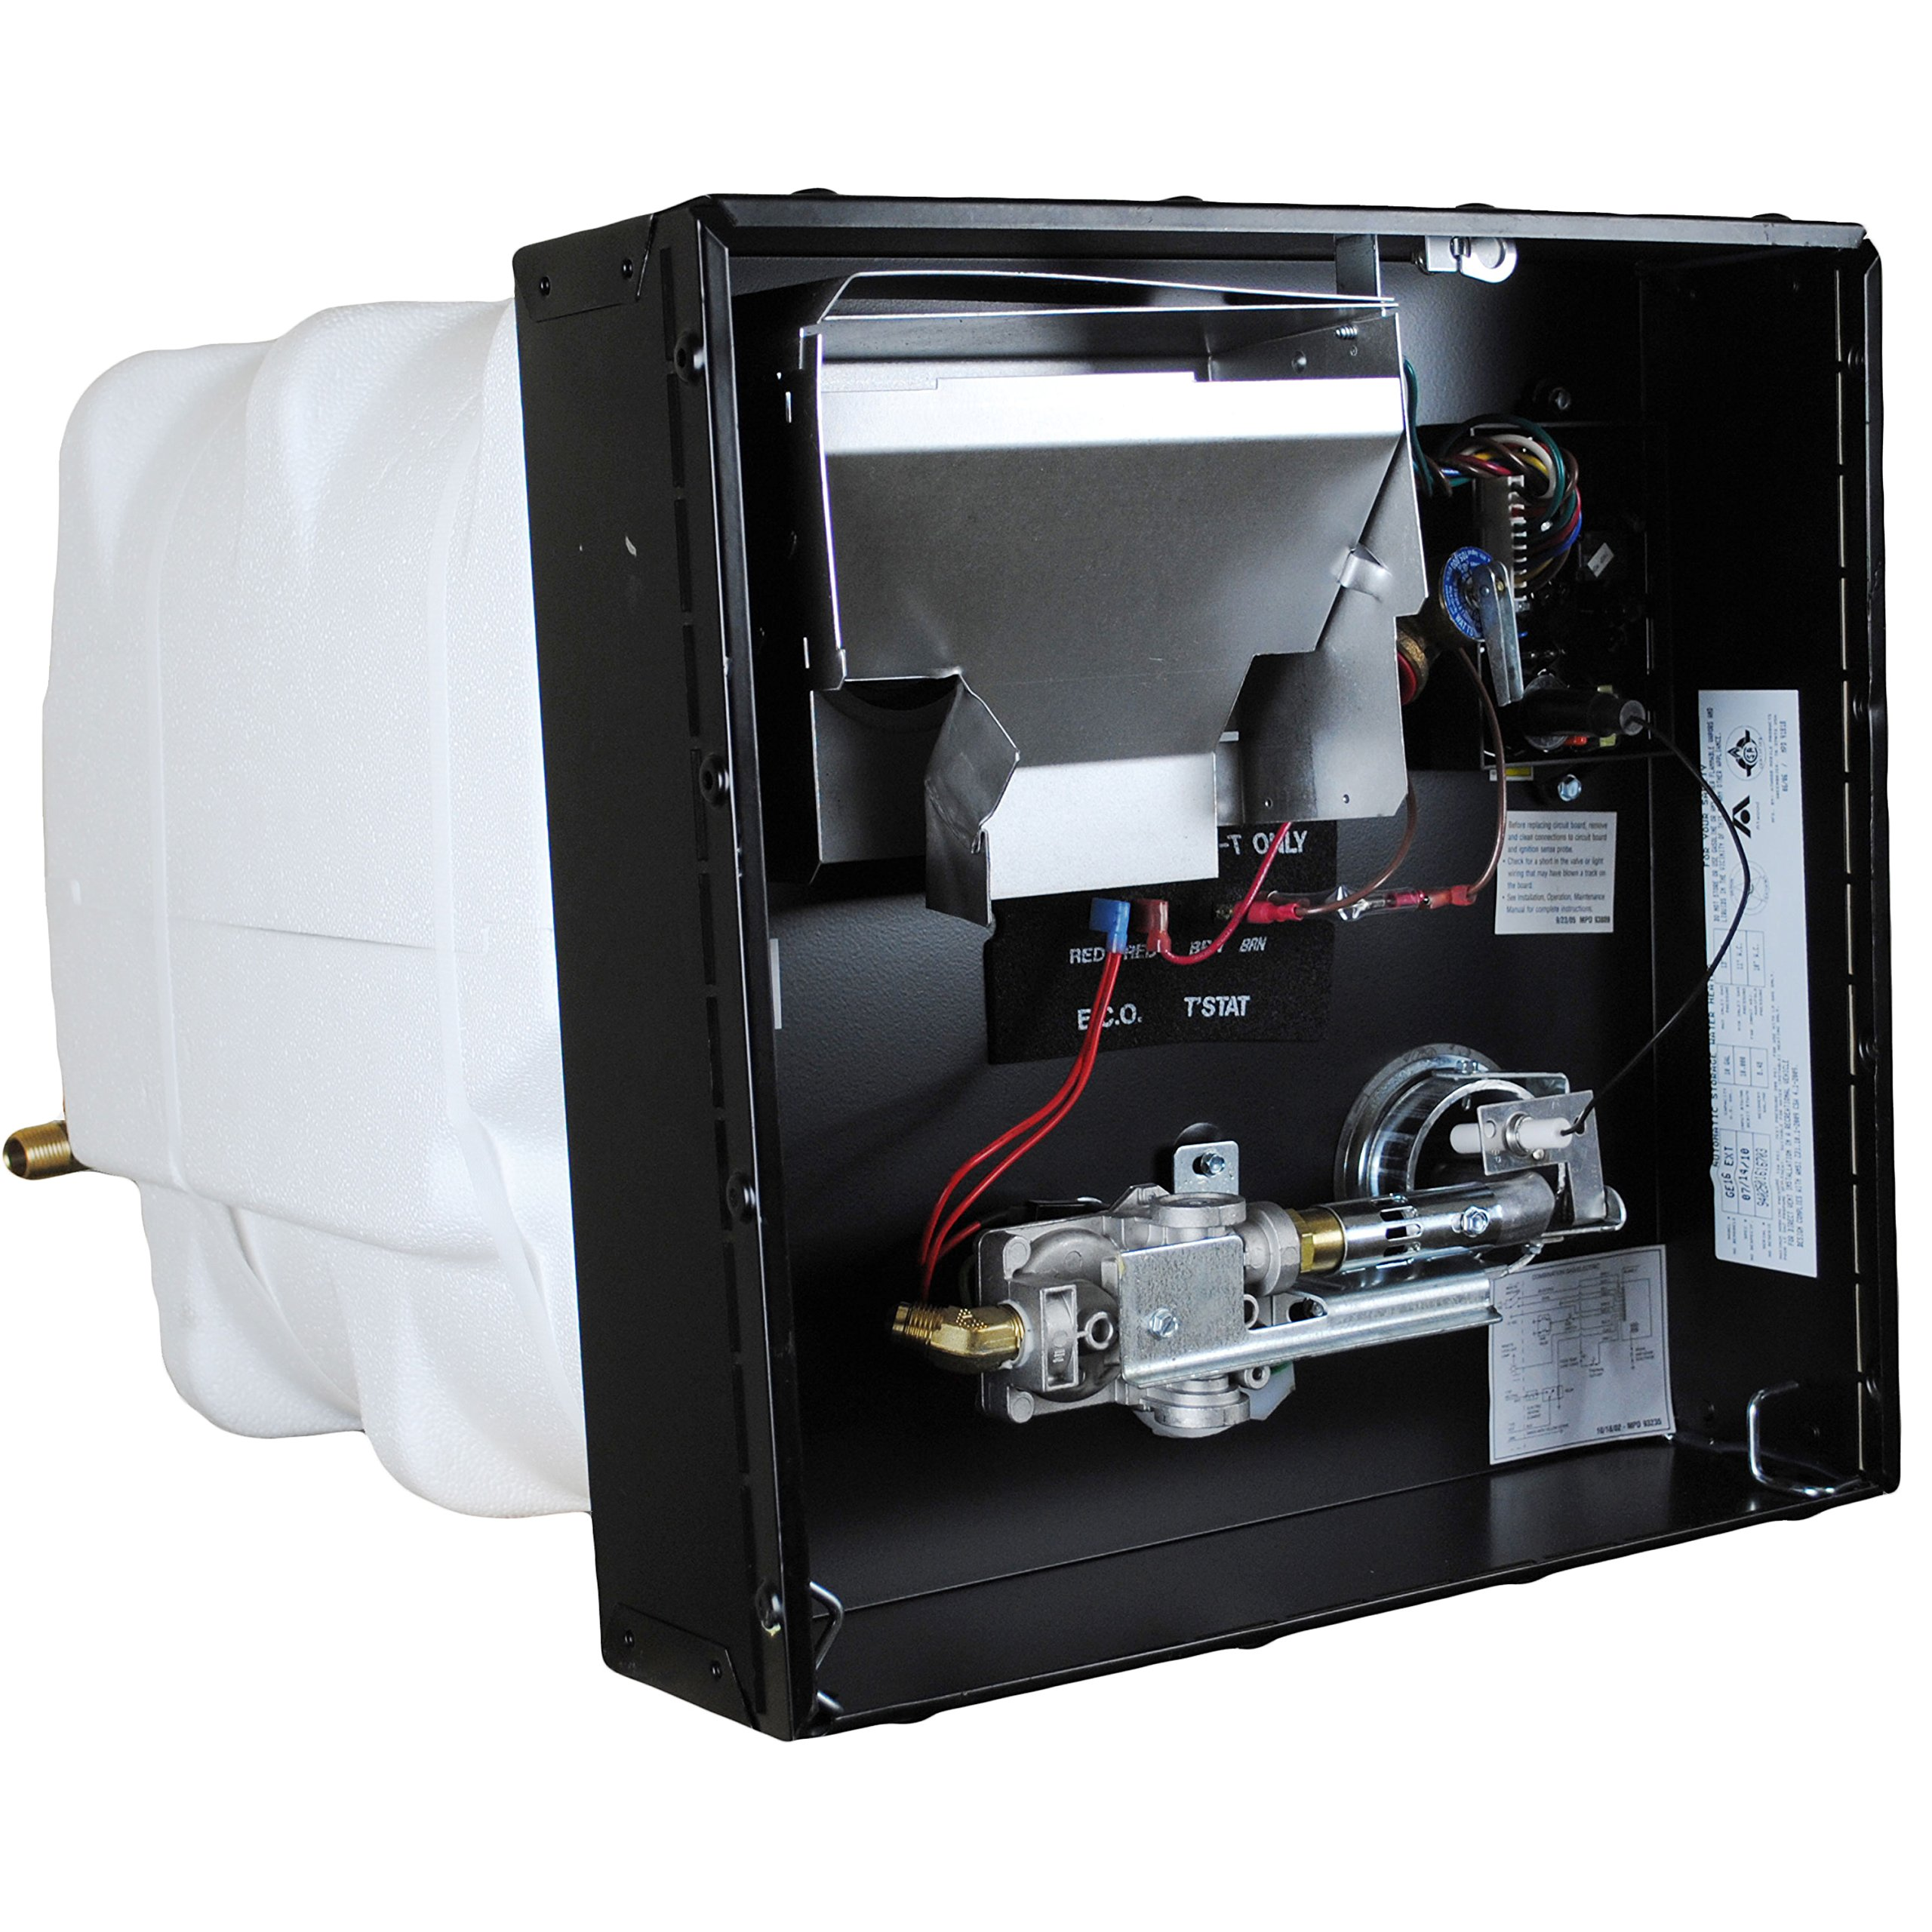 Atwood 90071 XT Gas/Electric Water Heater - 6 Gallon